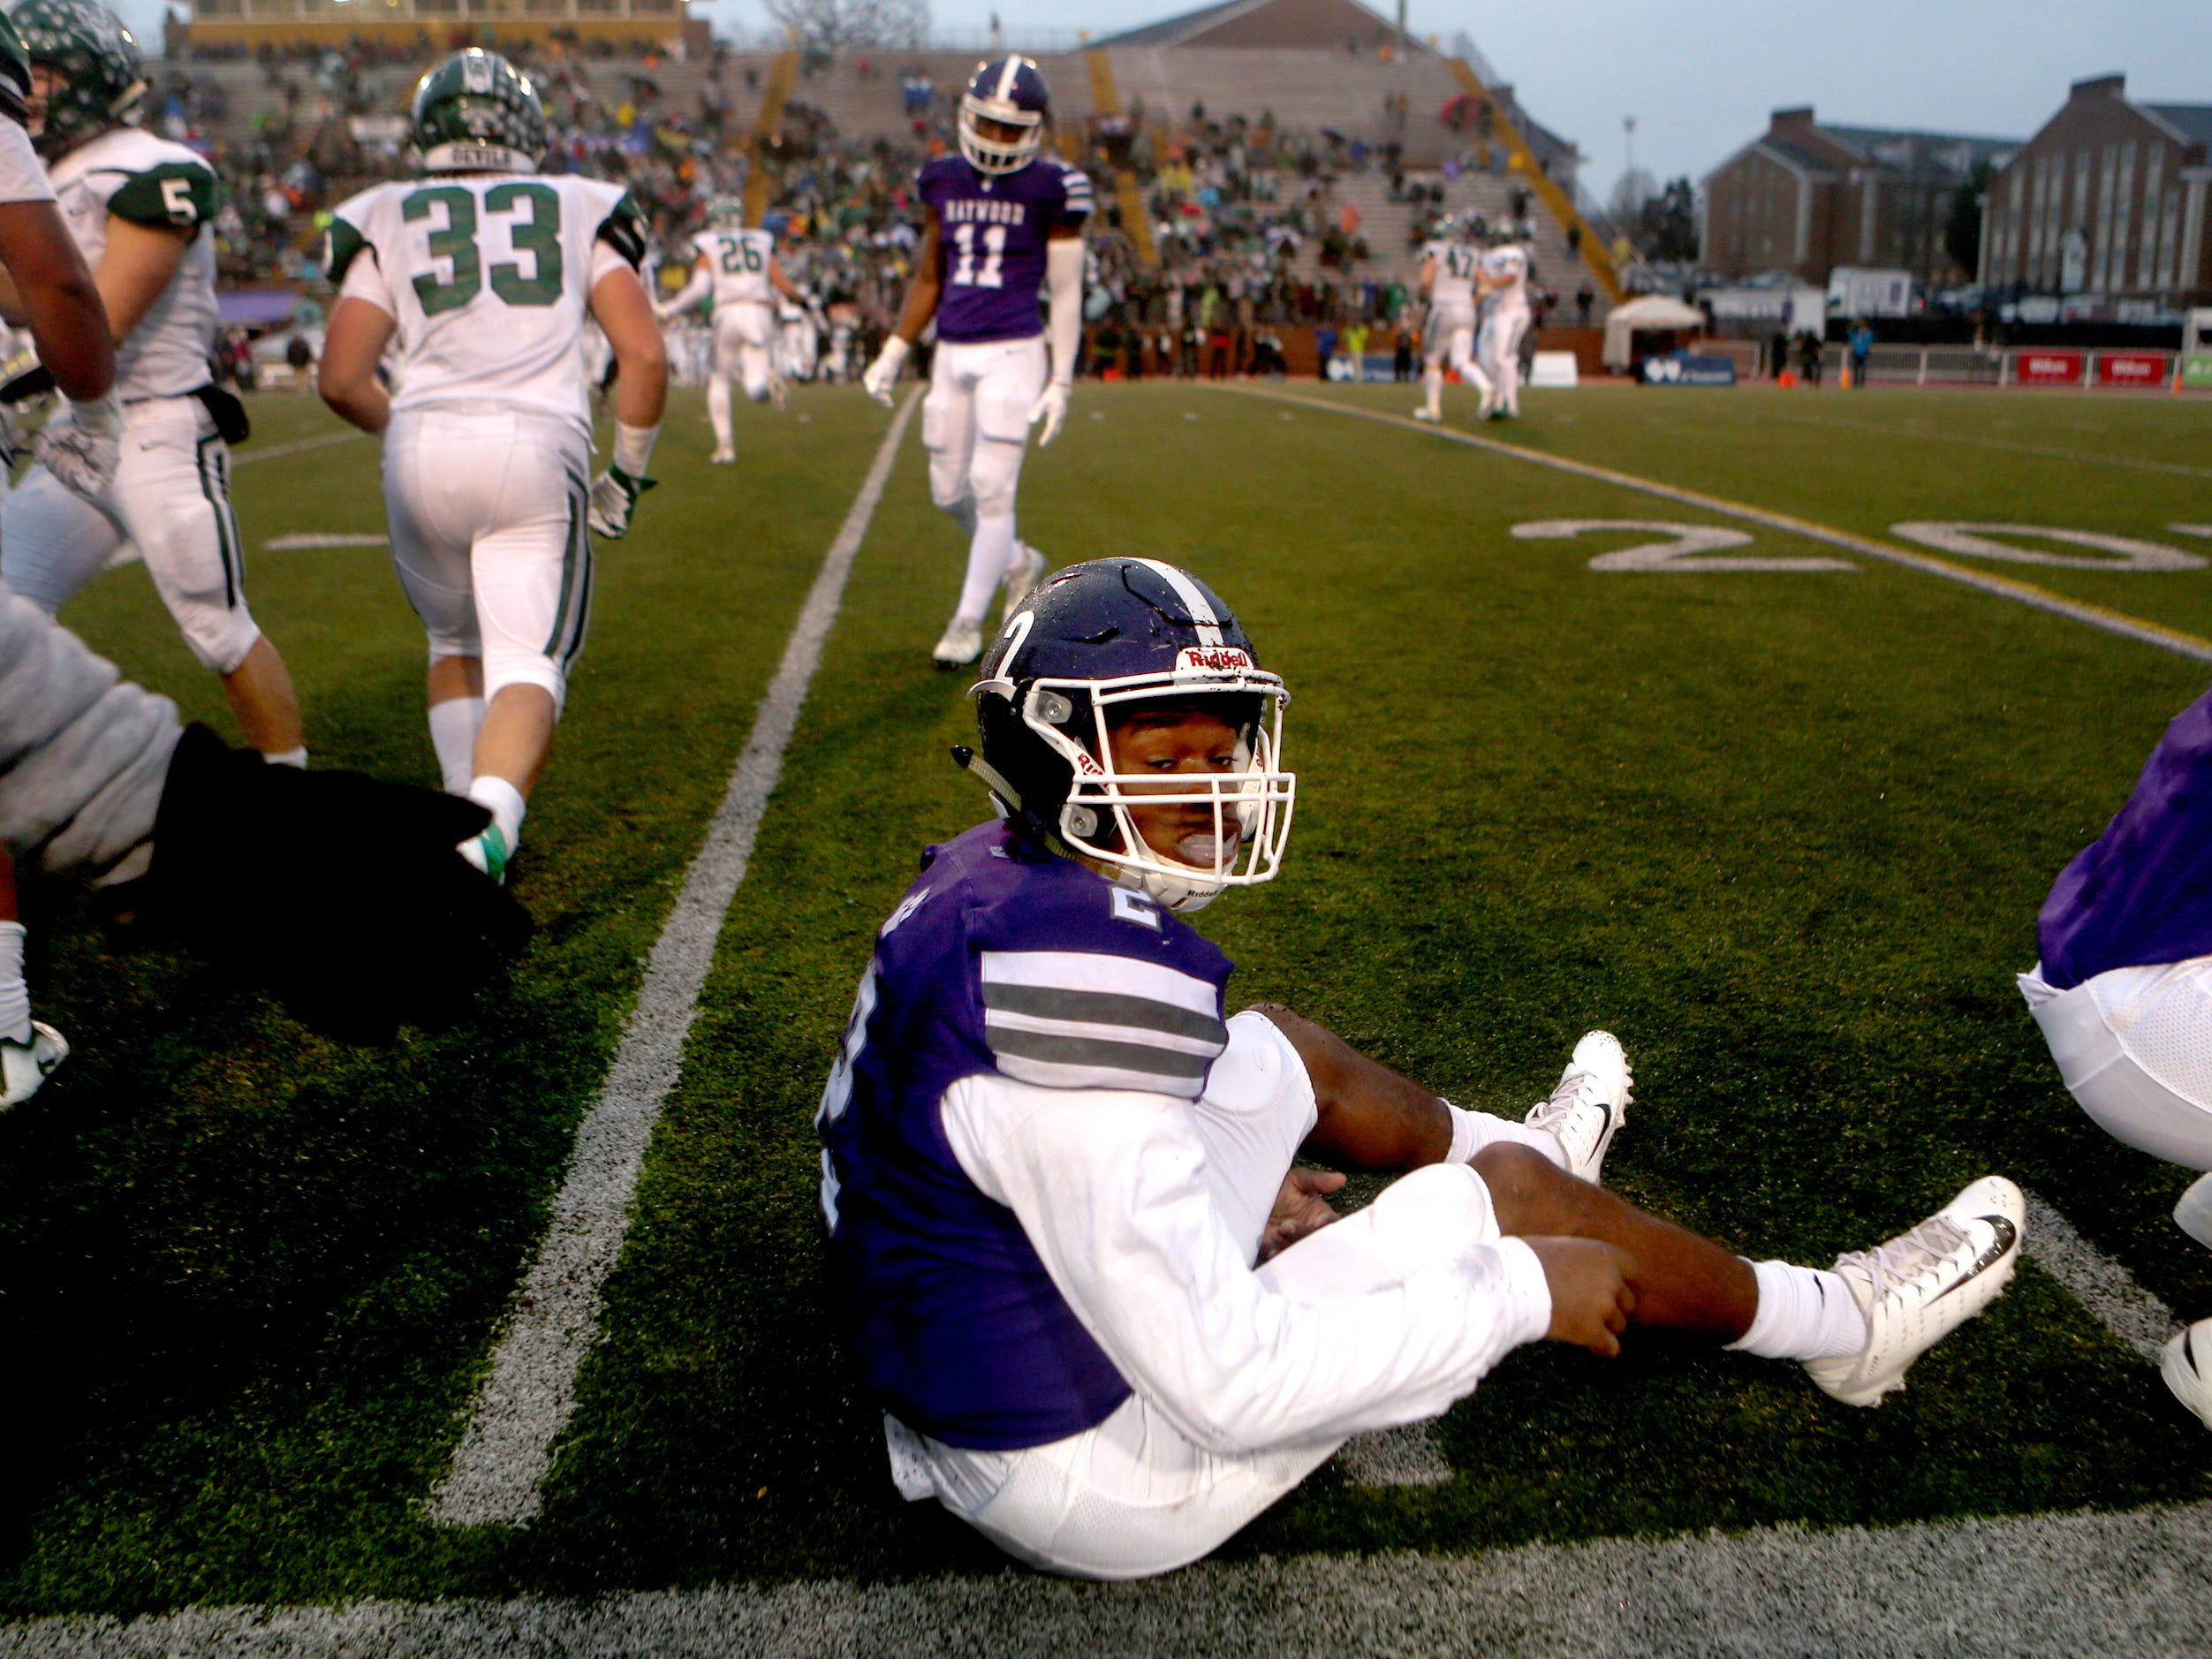 Haywood's Deyondrius Hines (2) sits on the ground after fumbling the ball that was recovered by Greeneville's Logan Shipley (55) during the Class 4A BlueCross Bowl state championship Thursday, Nov. 29, 2018, at Tennessee Tech's Tucker Stadium in Cookeville, Tenn.